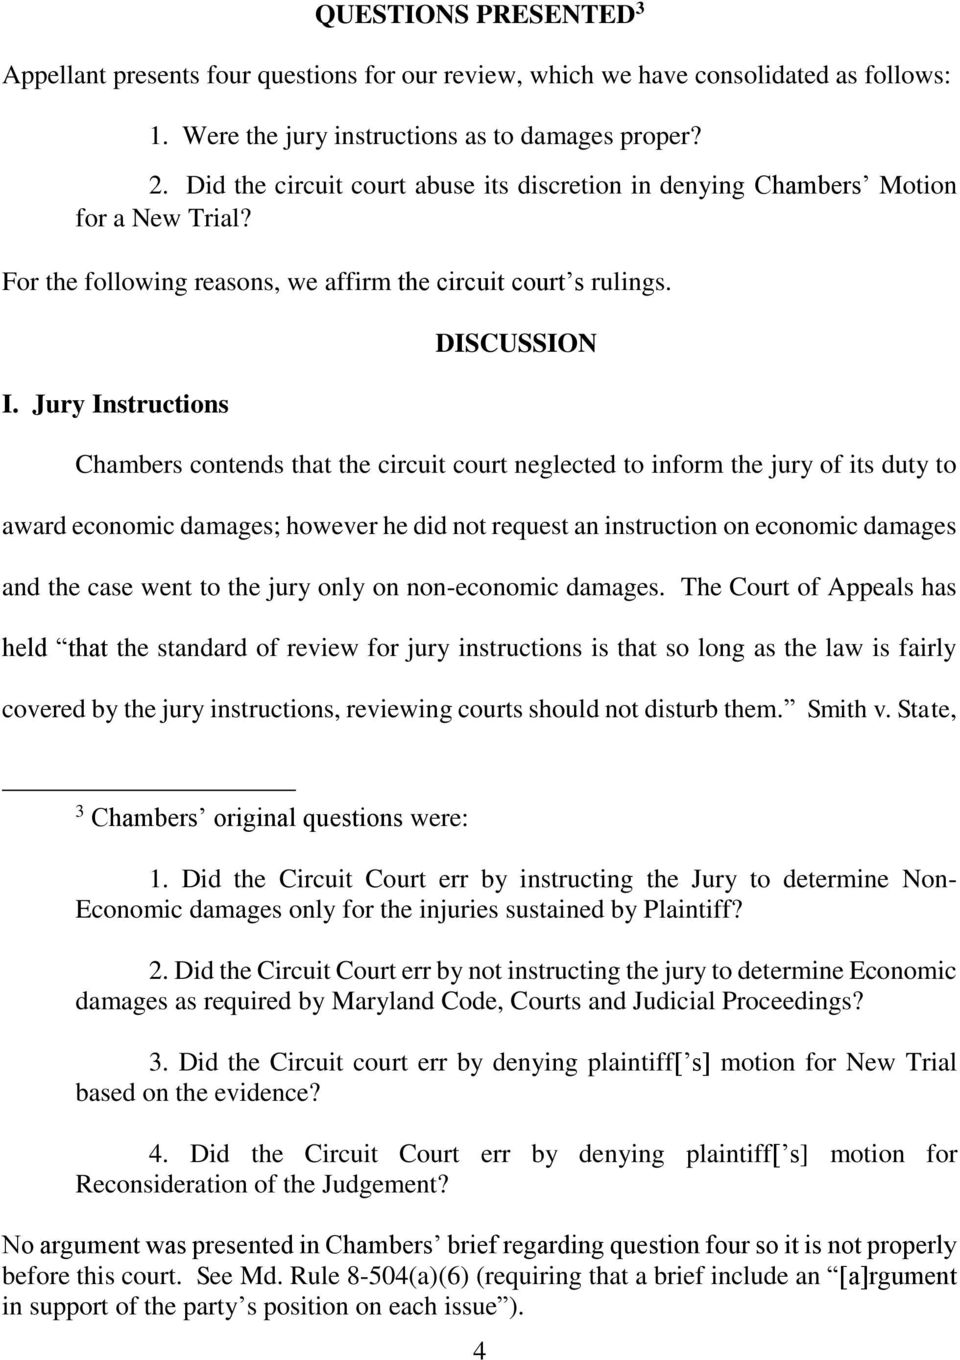 Jury Instructions DISCUSSION Chambers contends that the circuit court neglected to inform the jury of its duty to award economic damages; however he did not request an instruction on economic damages